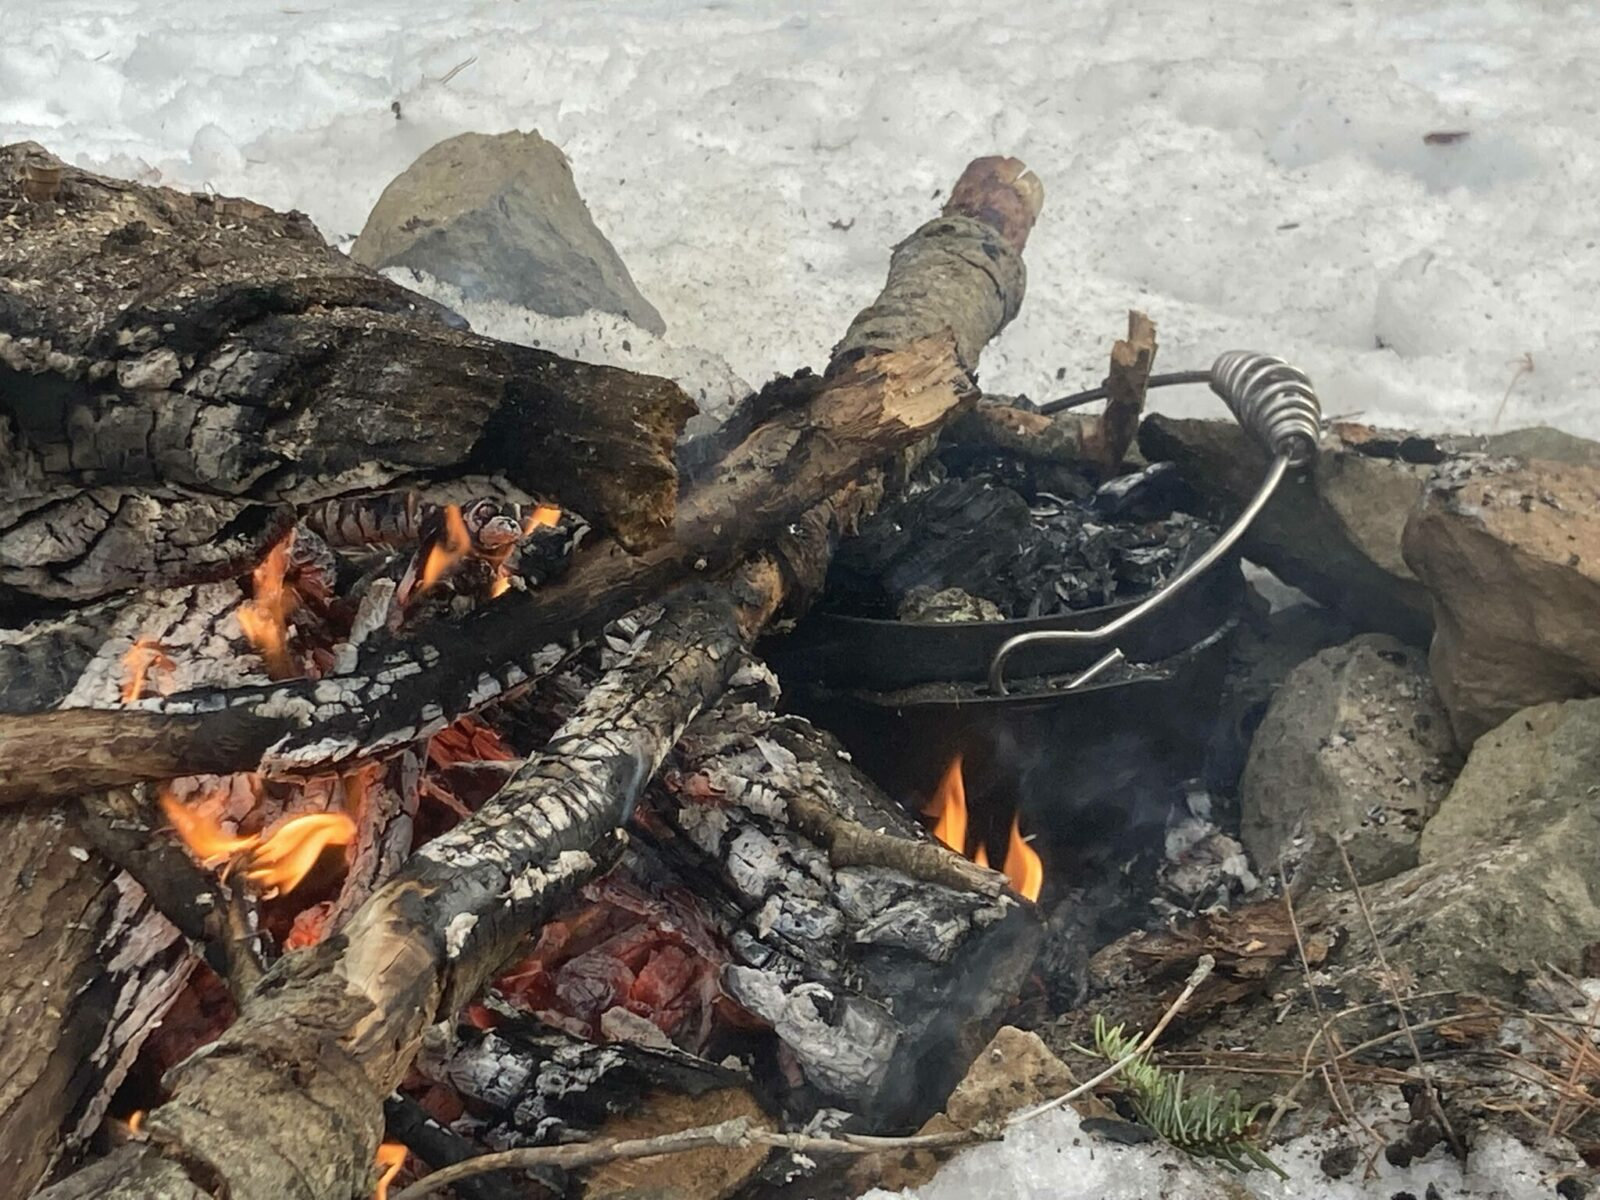 A dutch oven inside a campfire. Some of the coals and logs are on top of it. The campfire is surrounded by snow